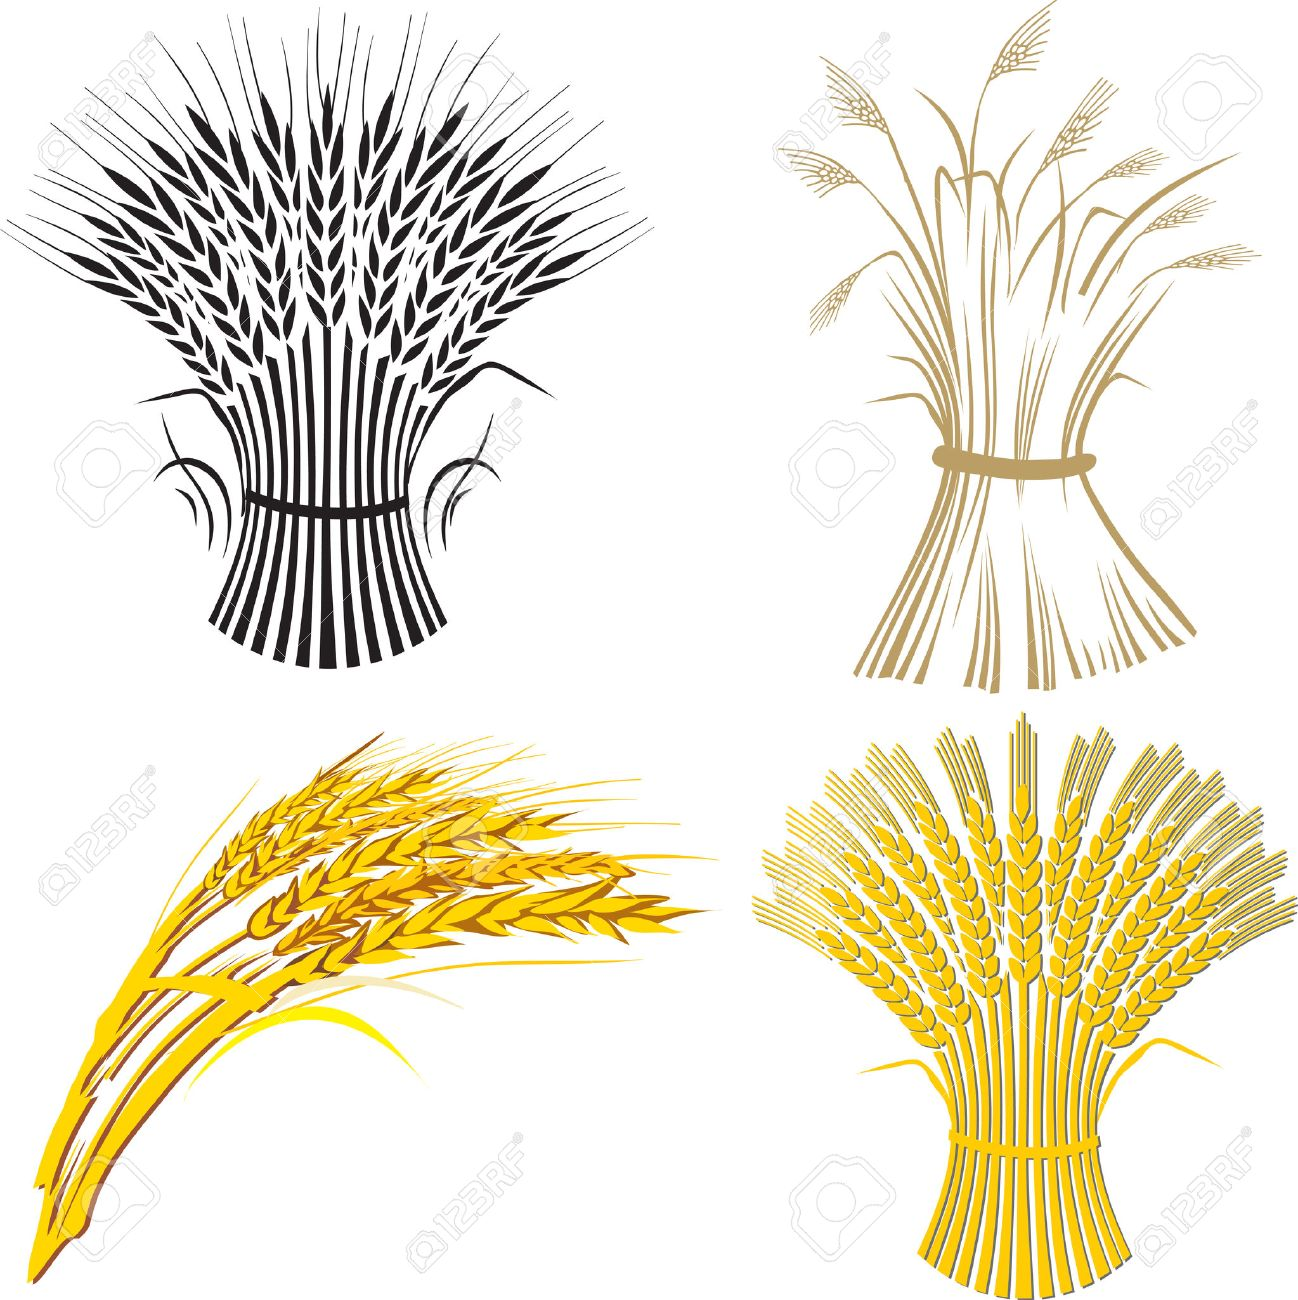 four wheat sheaf.